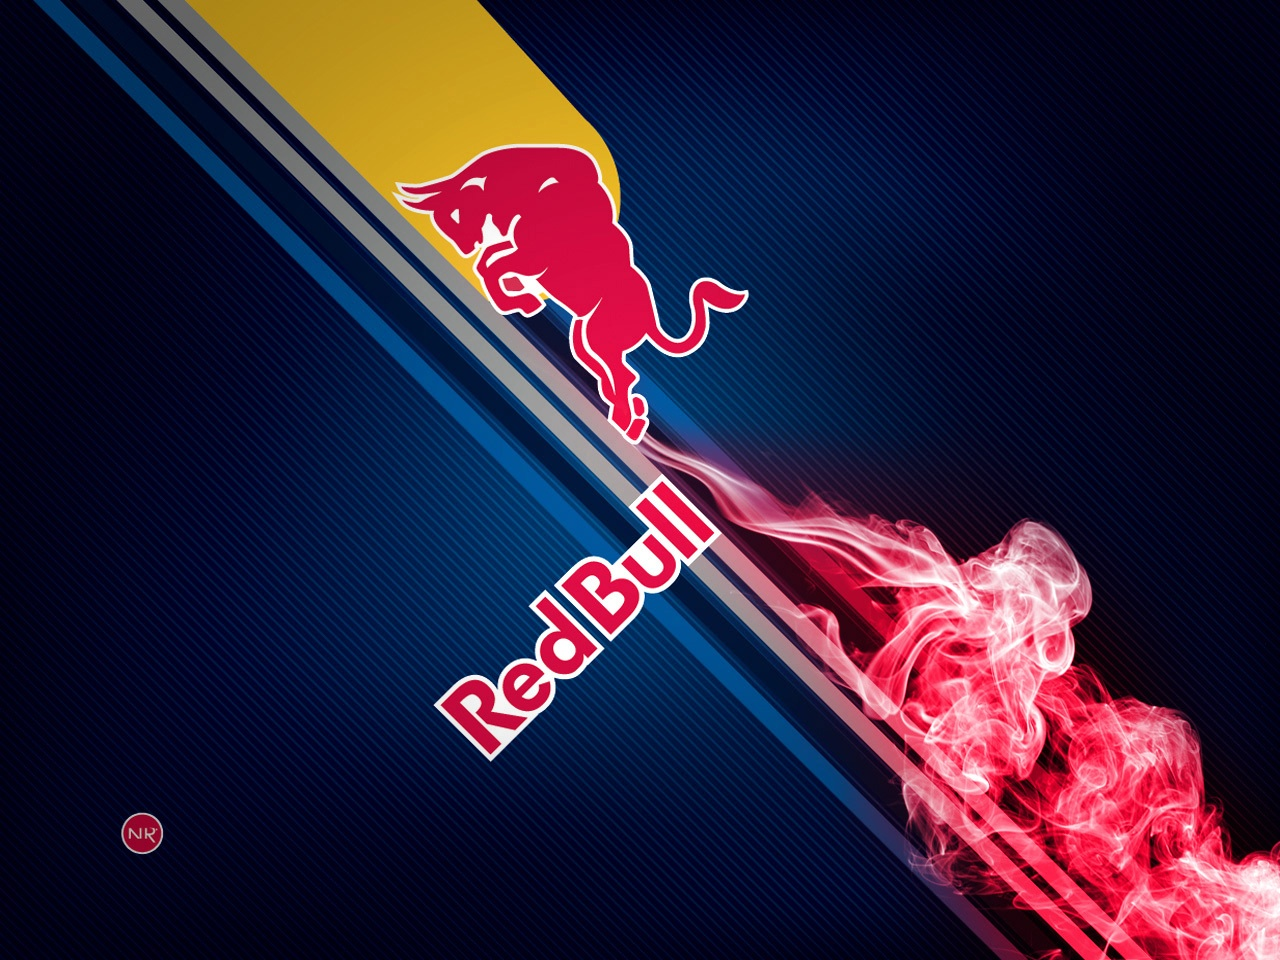 77 Red Bull Backgrounds On Wallpapersafari: Free Download Red Bull Wallpaper [1280x960] For Your